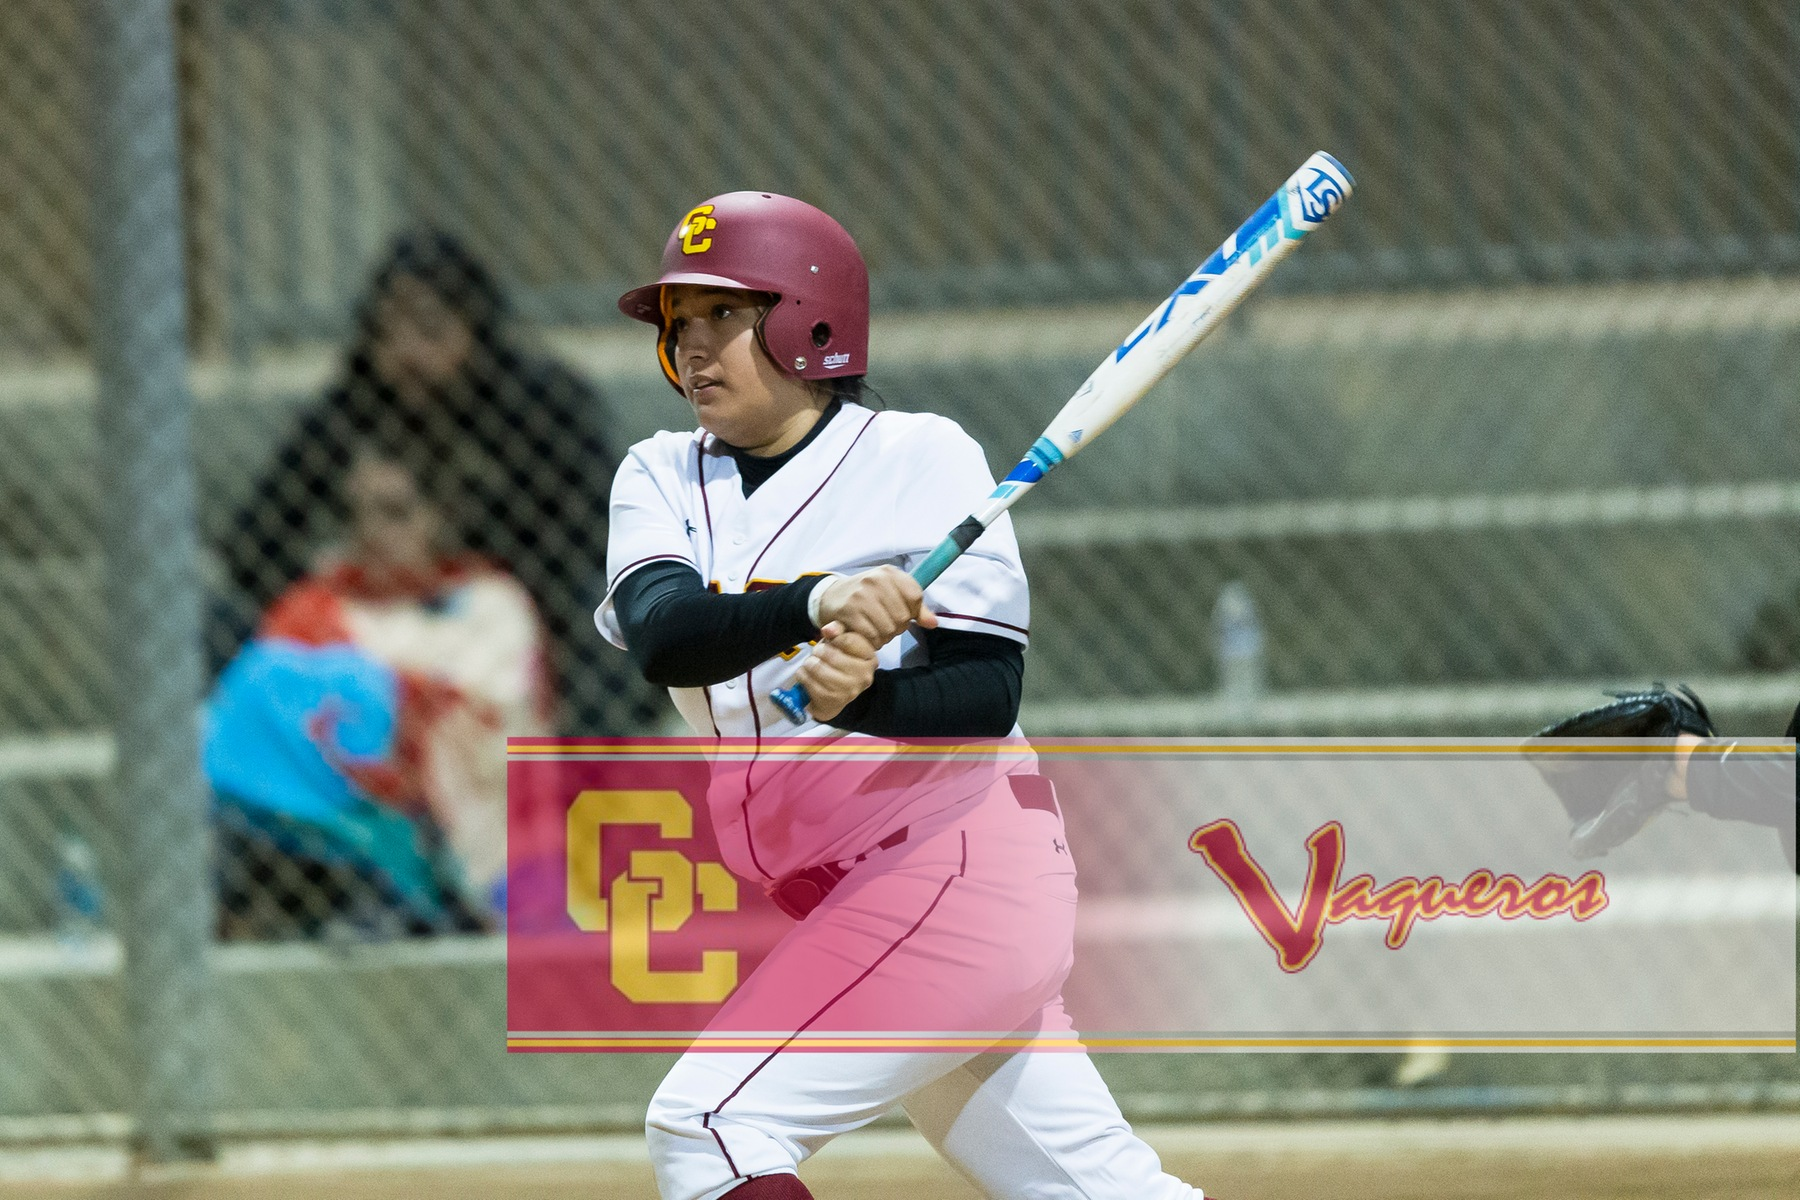 Samantha Medrano hammers three hits in 15-1 GCC win over West L.A.